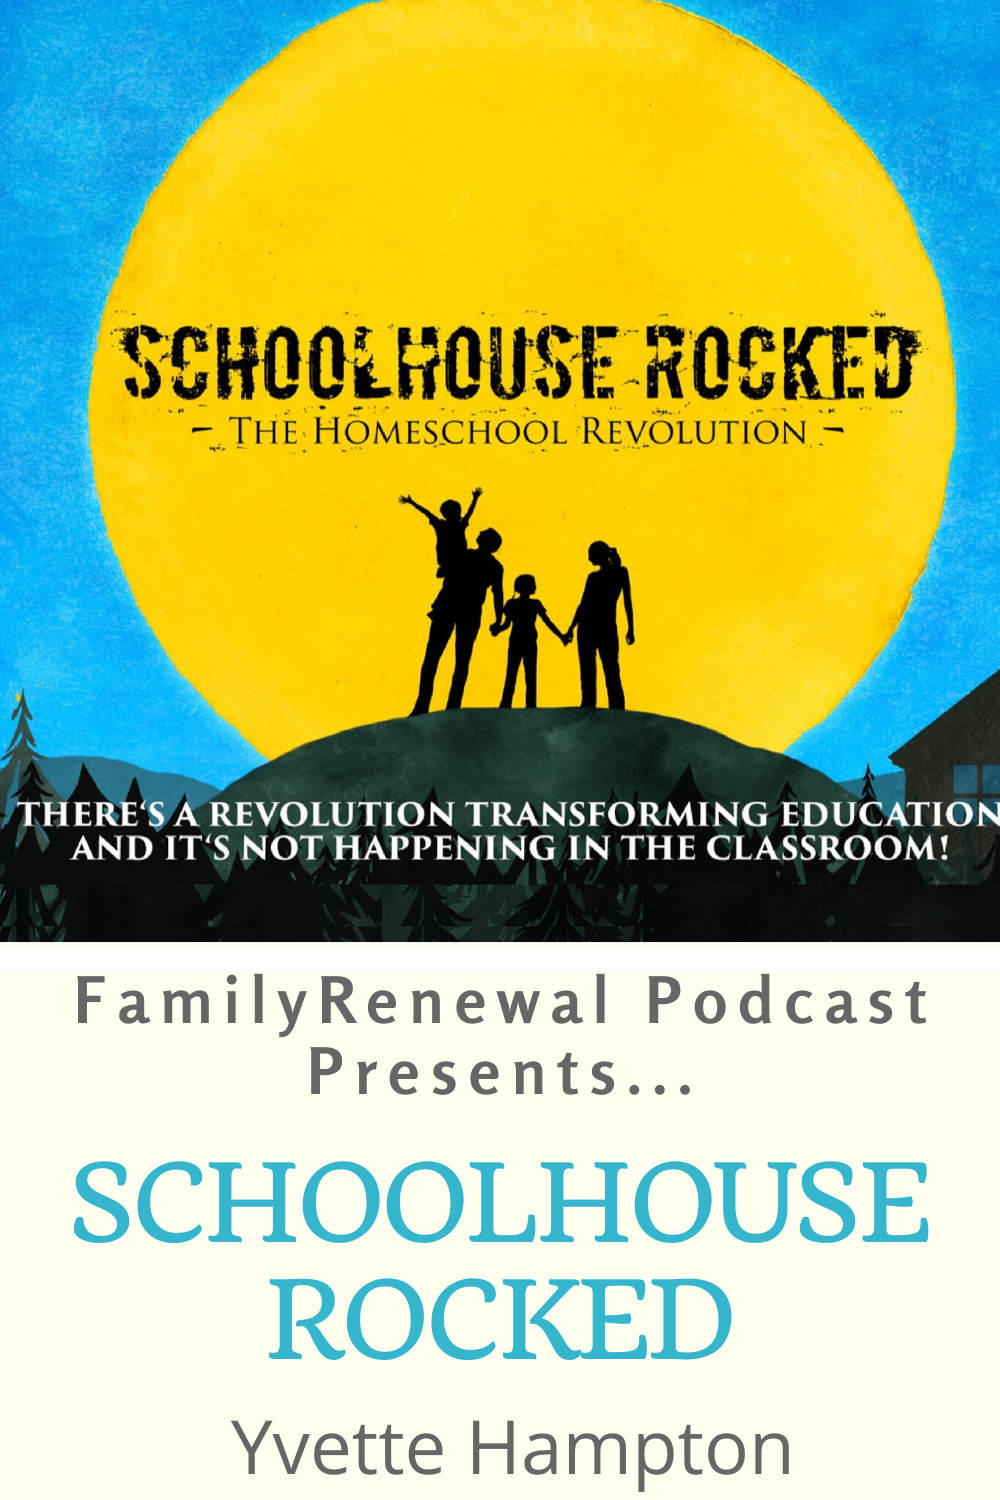 In this episode, Israel Wayne interviews Yvette Hampton of Schoolhouse Rocked, a new documentary forced on education. Garritt & Yvette Hampton are homeschooling parents and filmmakers who have a desire to help parents find the best path for educating their children.